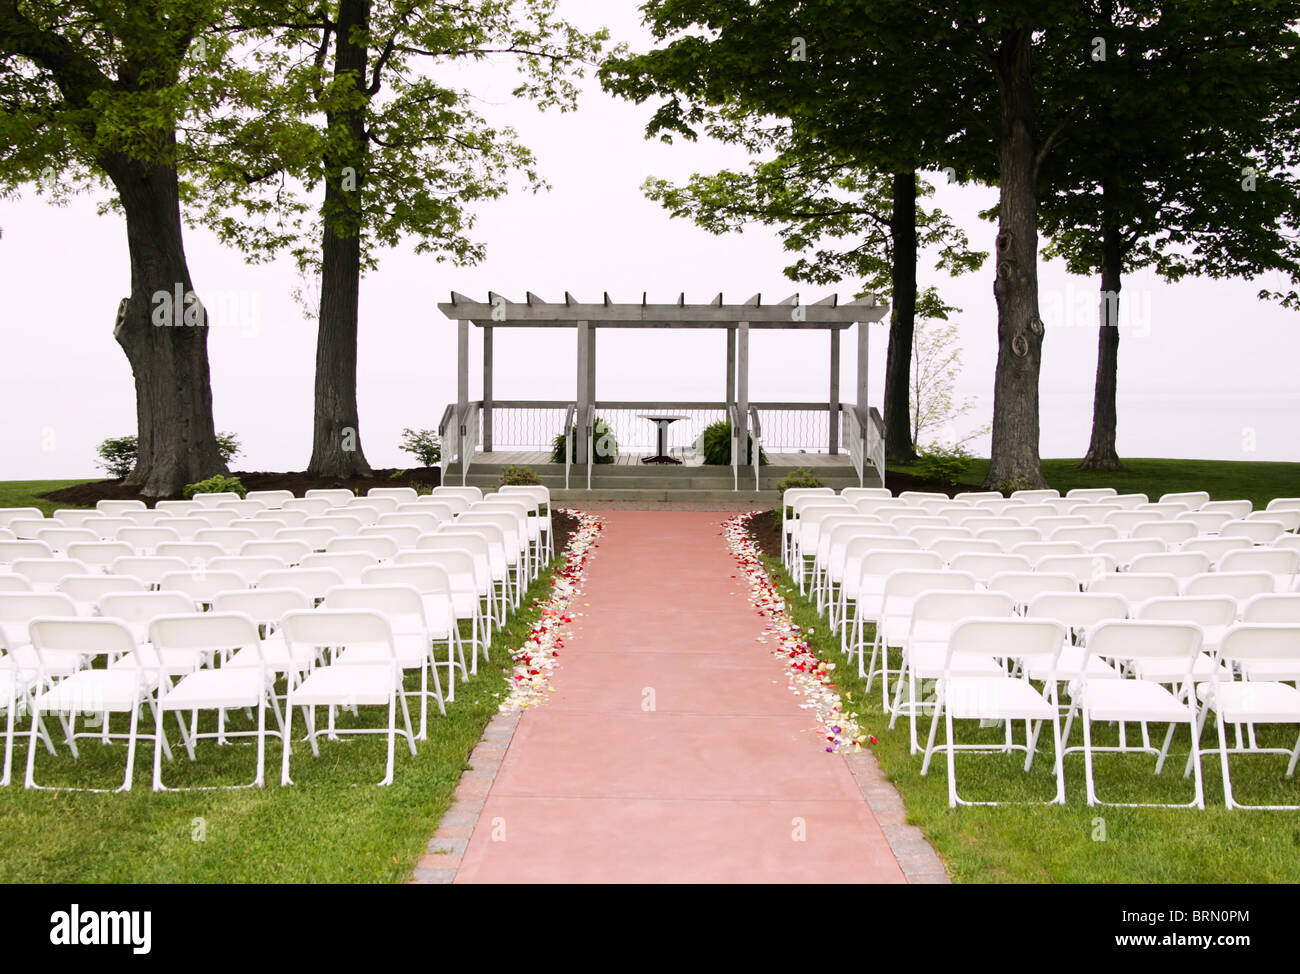 White Chairs At A Wedding Indoor Stock Photo: White Folding Chairs Setup For A Wedding Ceremony Stock